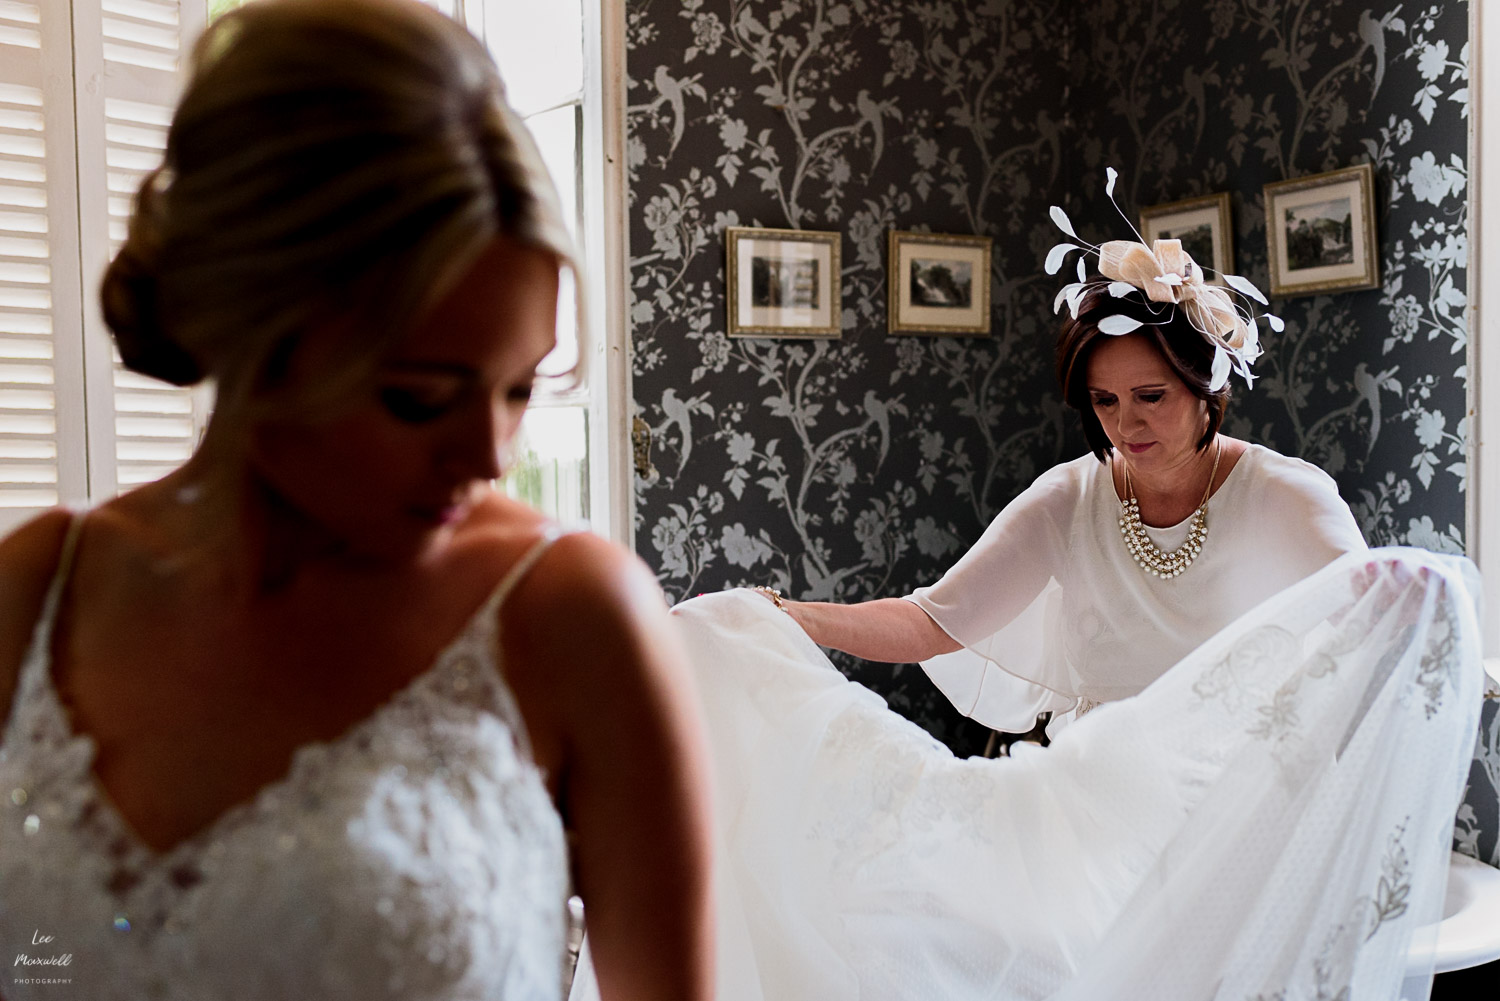 Mum helping with wedding dress